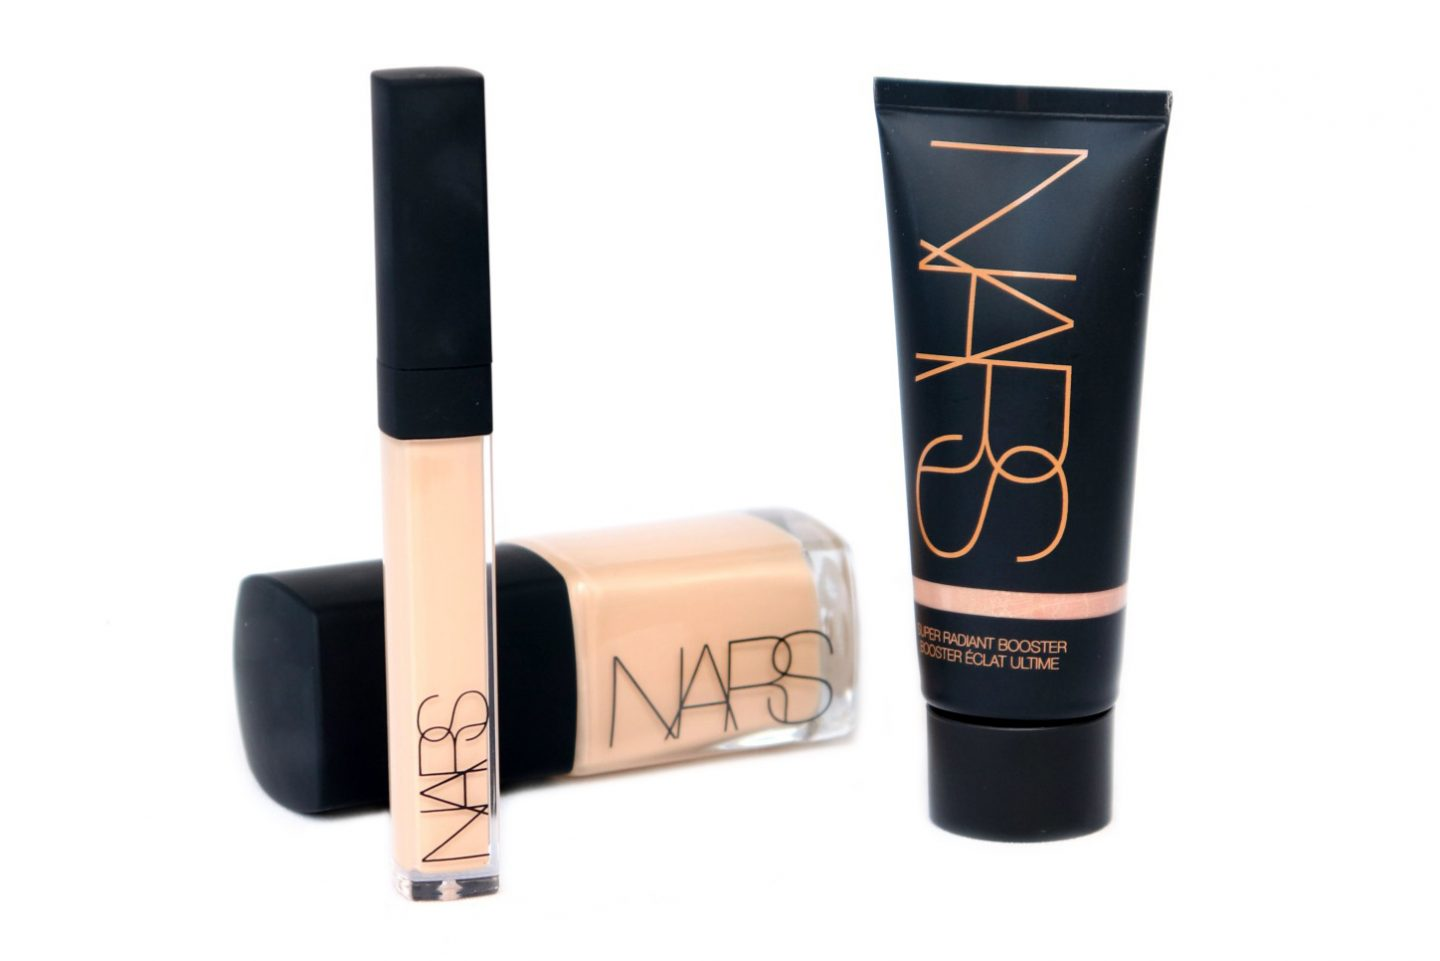 NARS Radiance Repowered Lineup Review